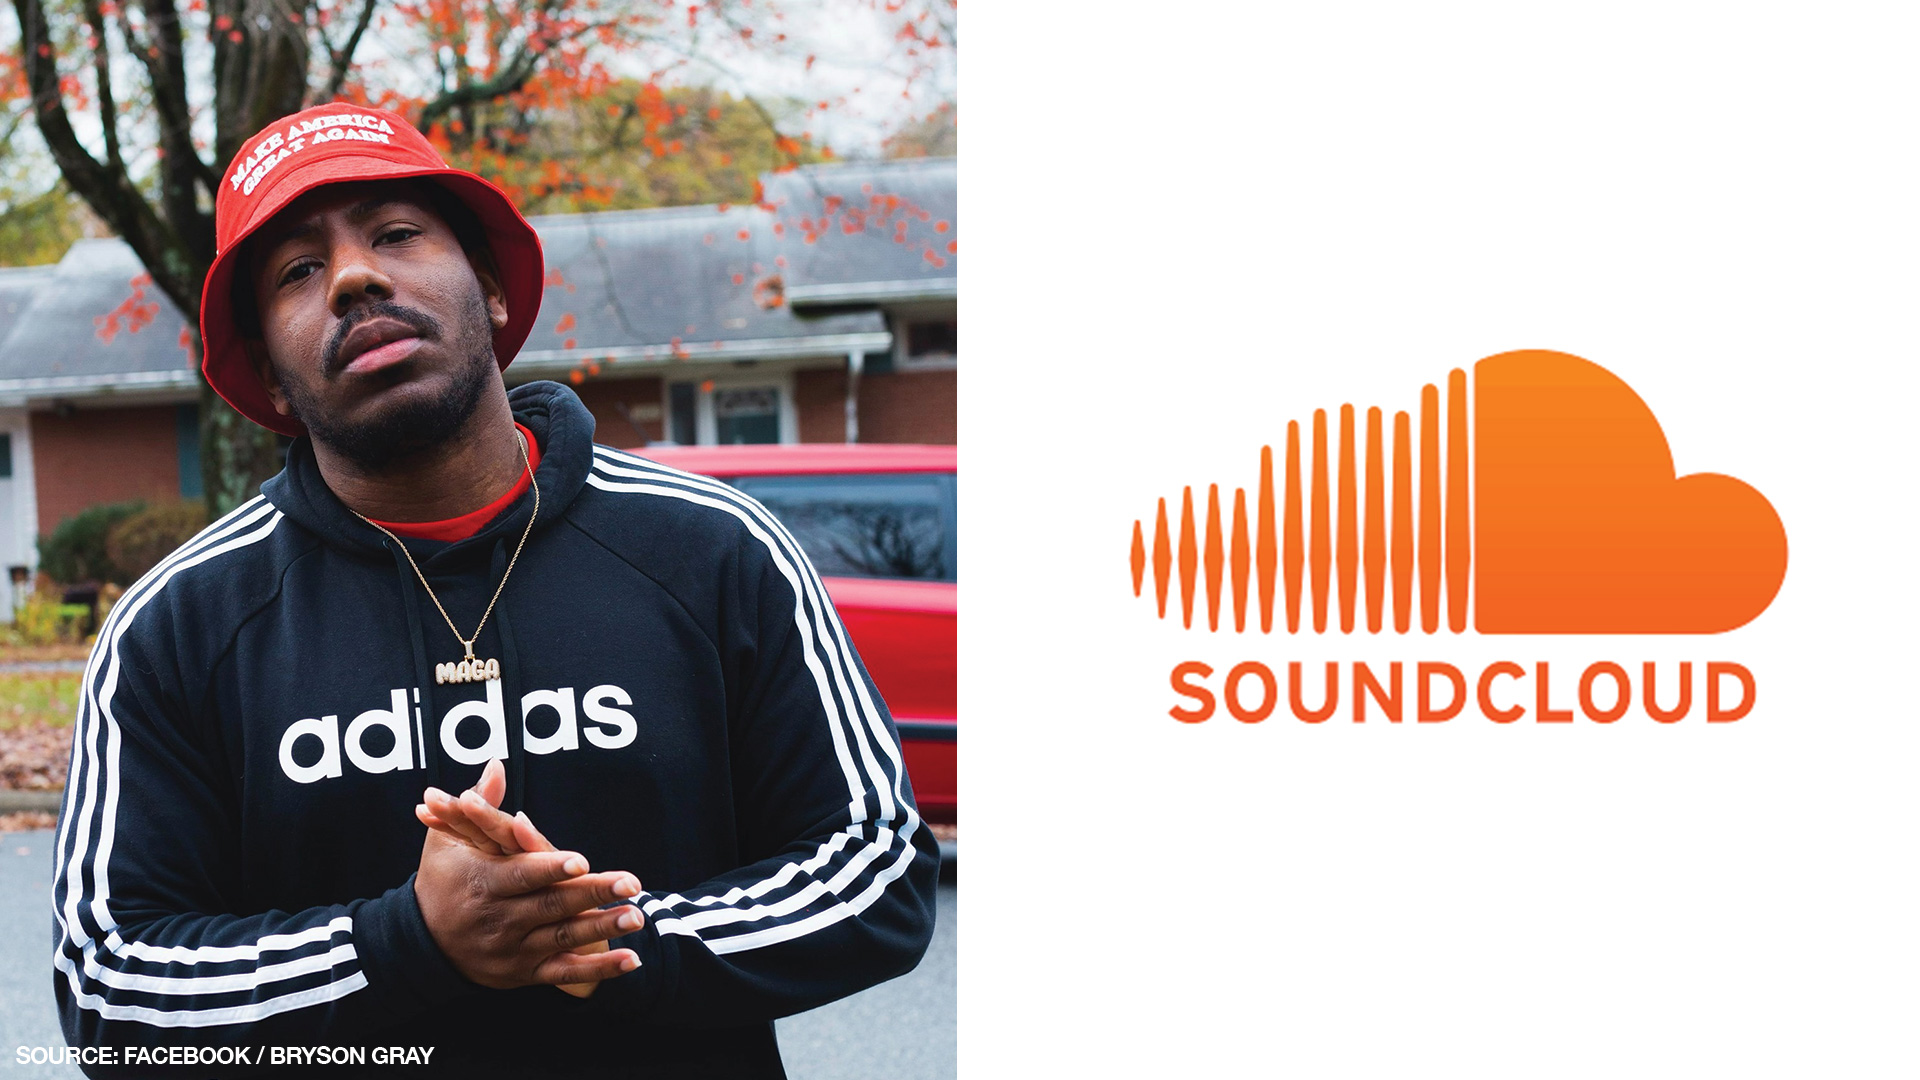 UPDATE: Christian conservative rapper Bryson Gray pulled from SoundCloud